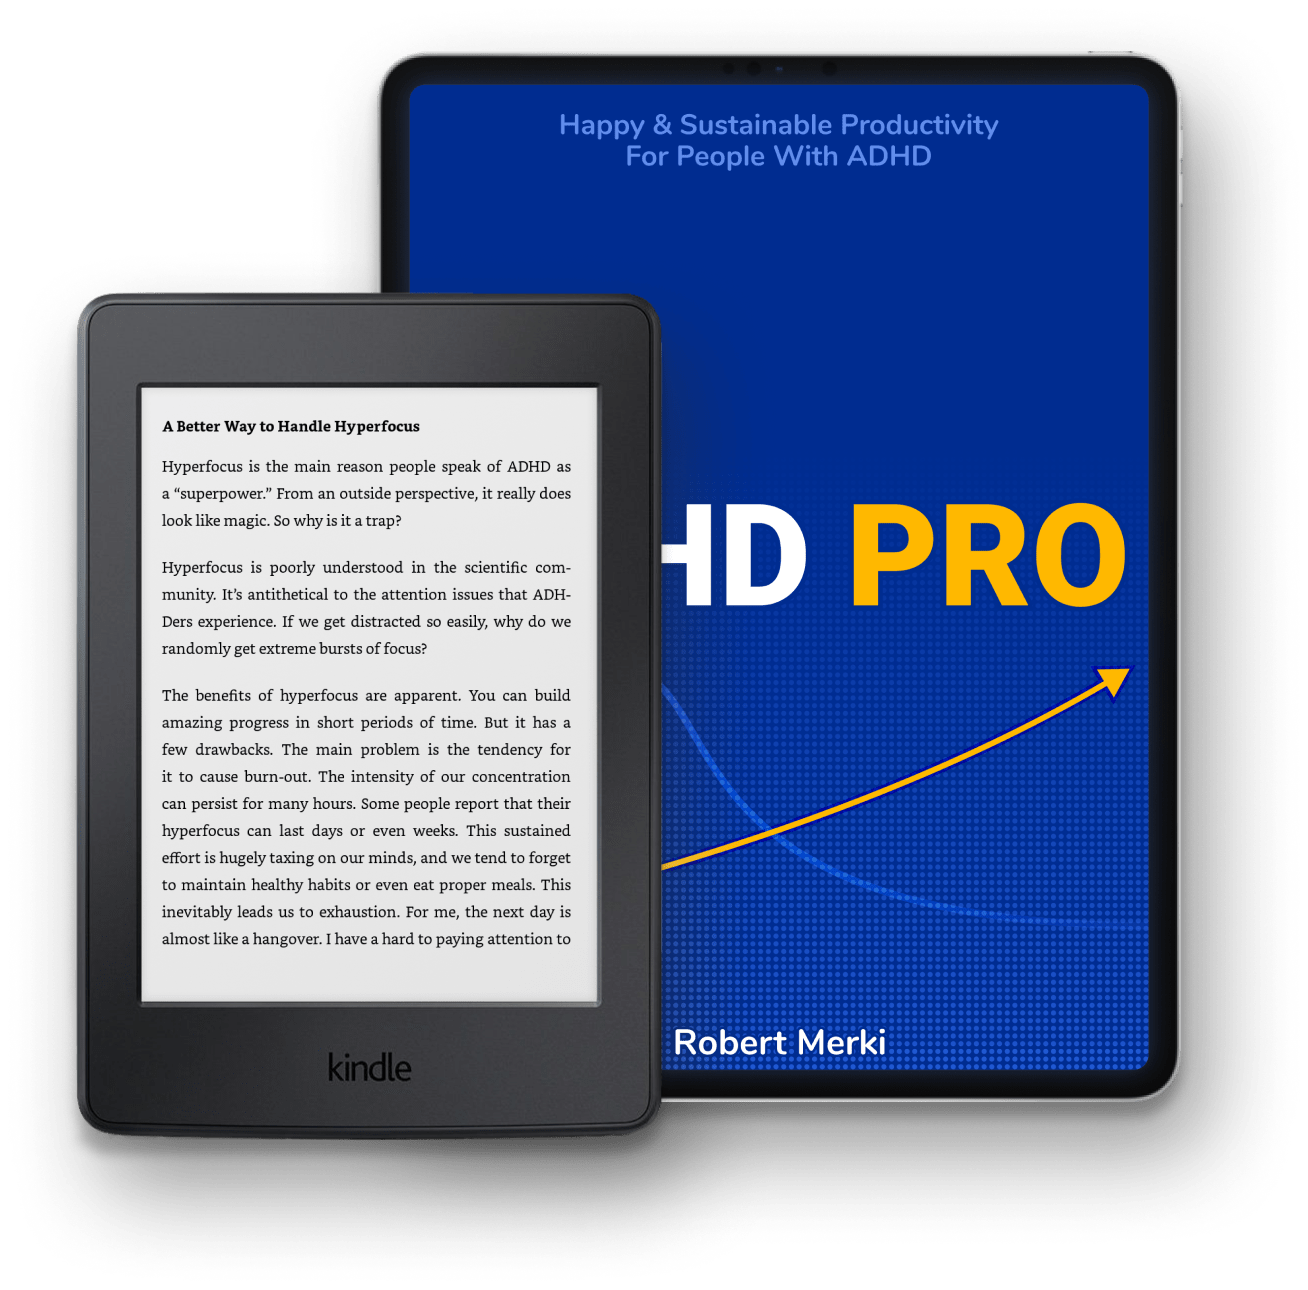 The ADHD Pro book, shown on some compatible devices such as the Kindle and iPad Pro